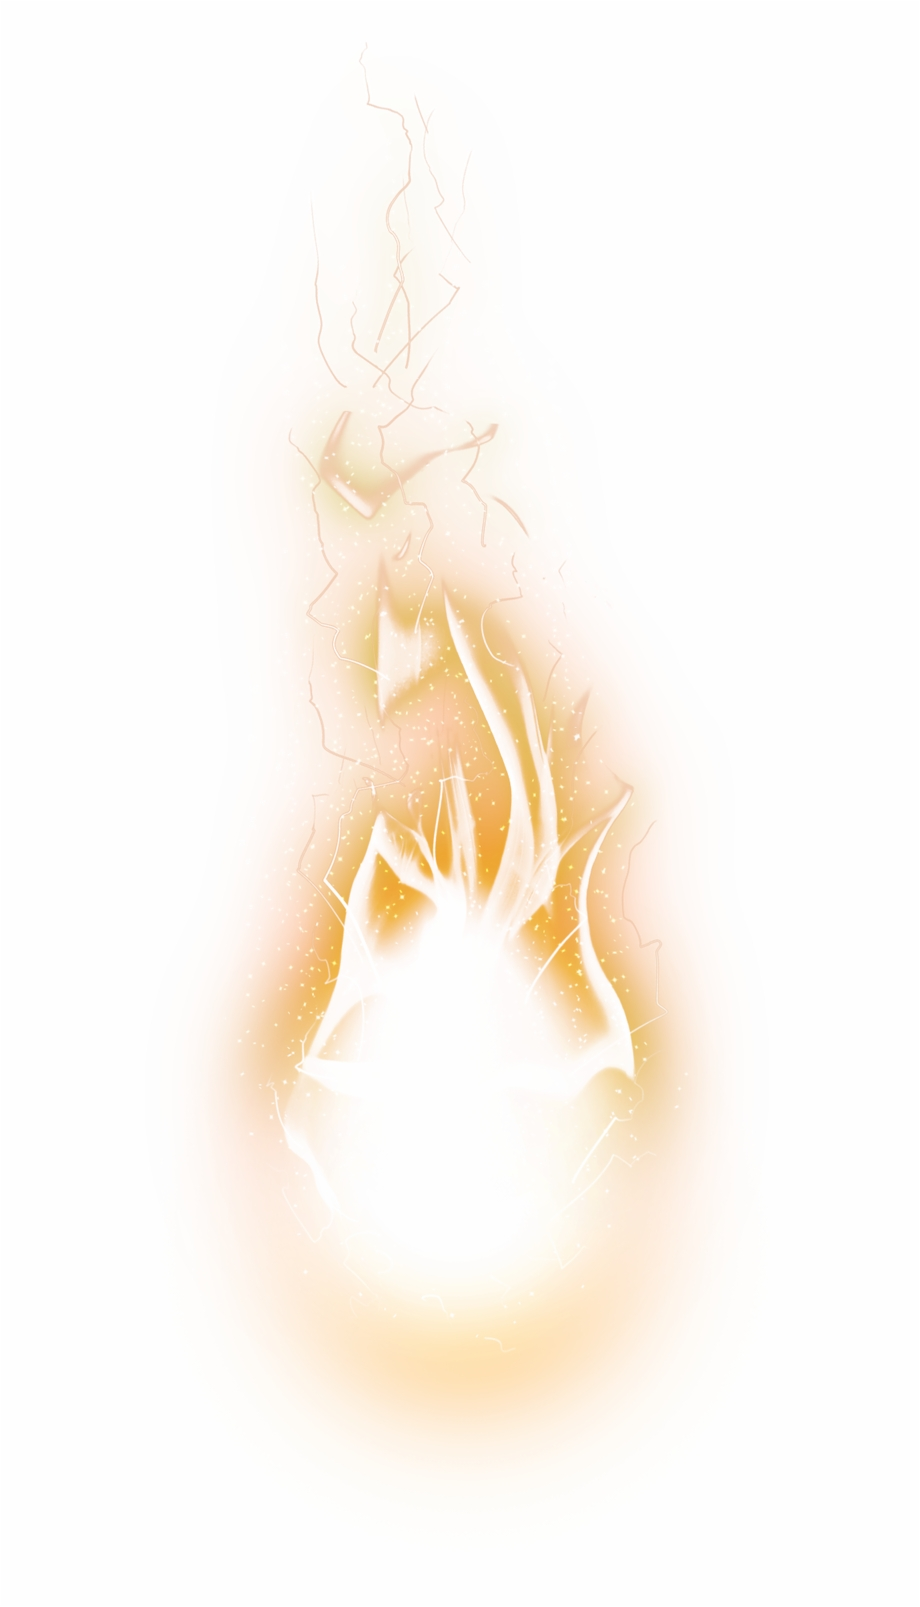 Abstract Light Effect Png Image With Transparent Background.